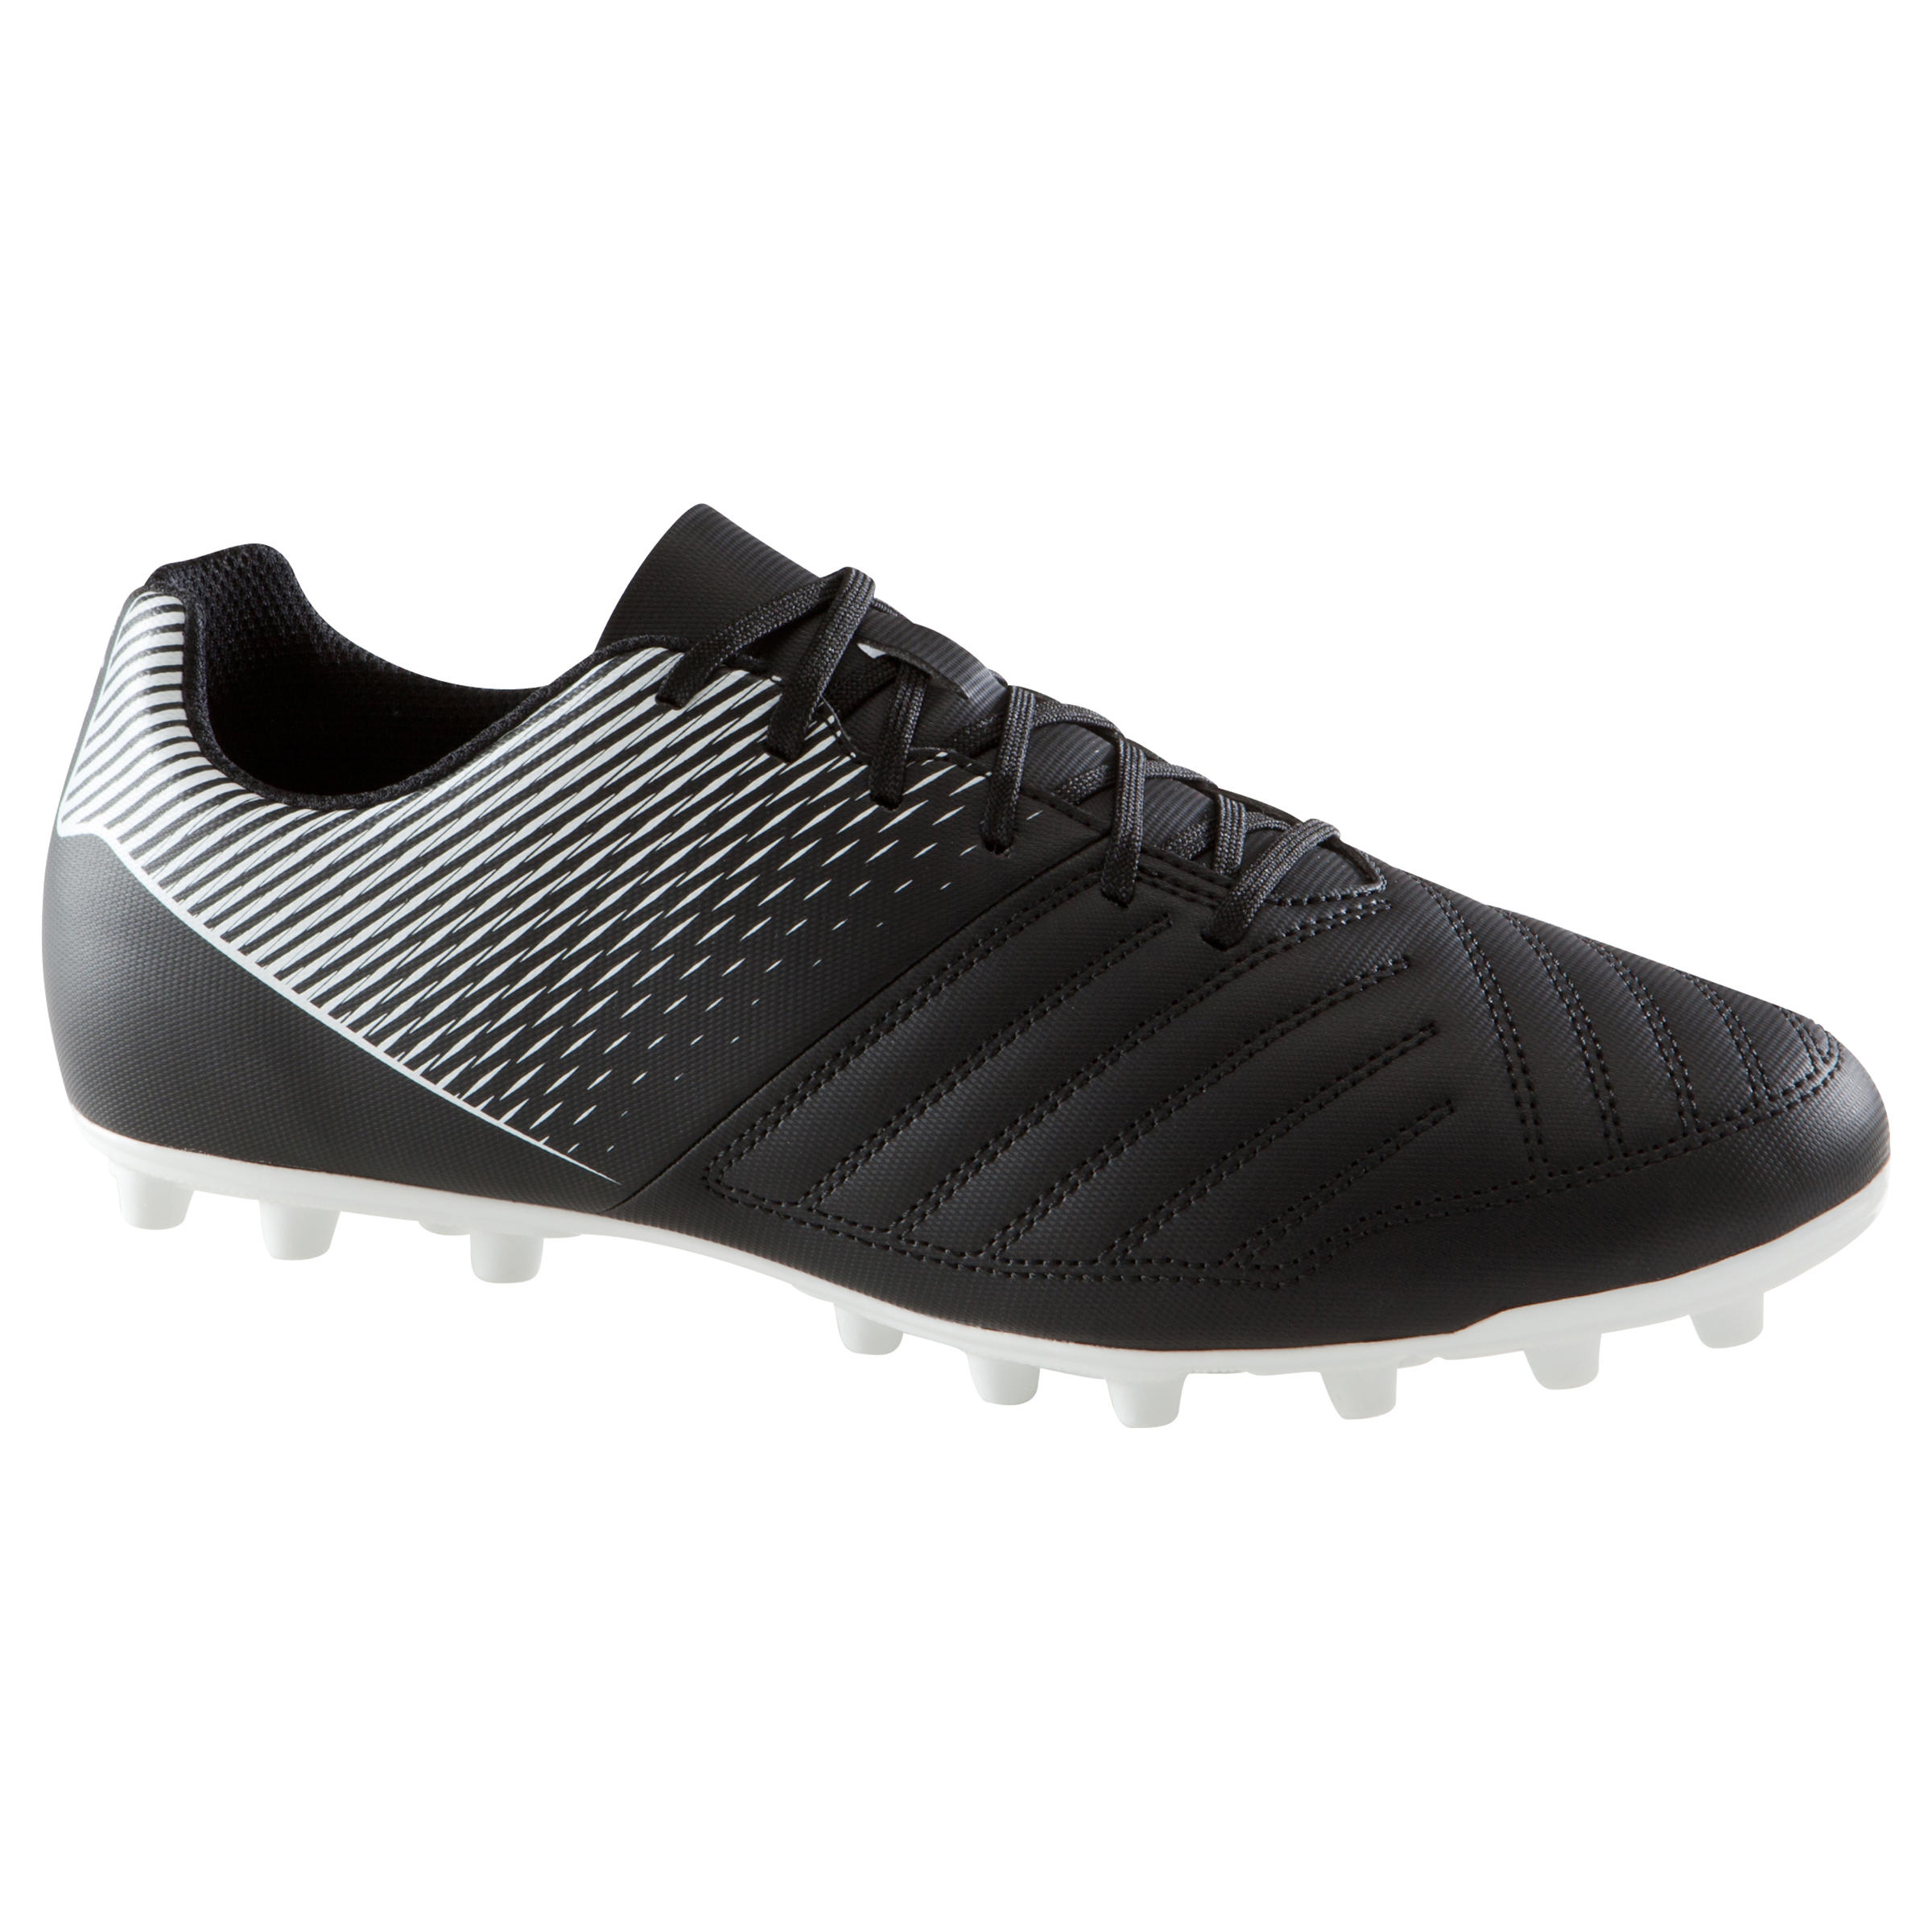 1b293c196e3f Football Shoes